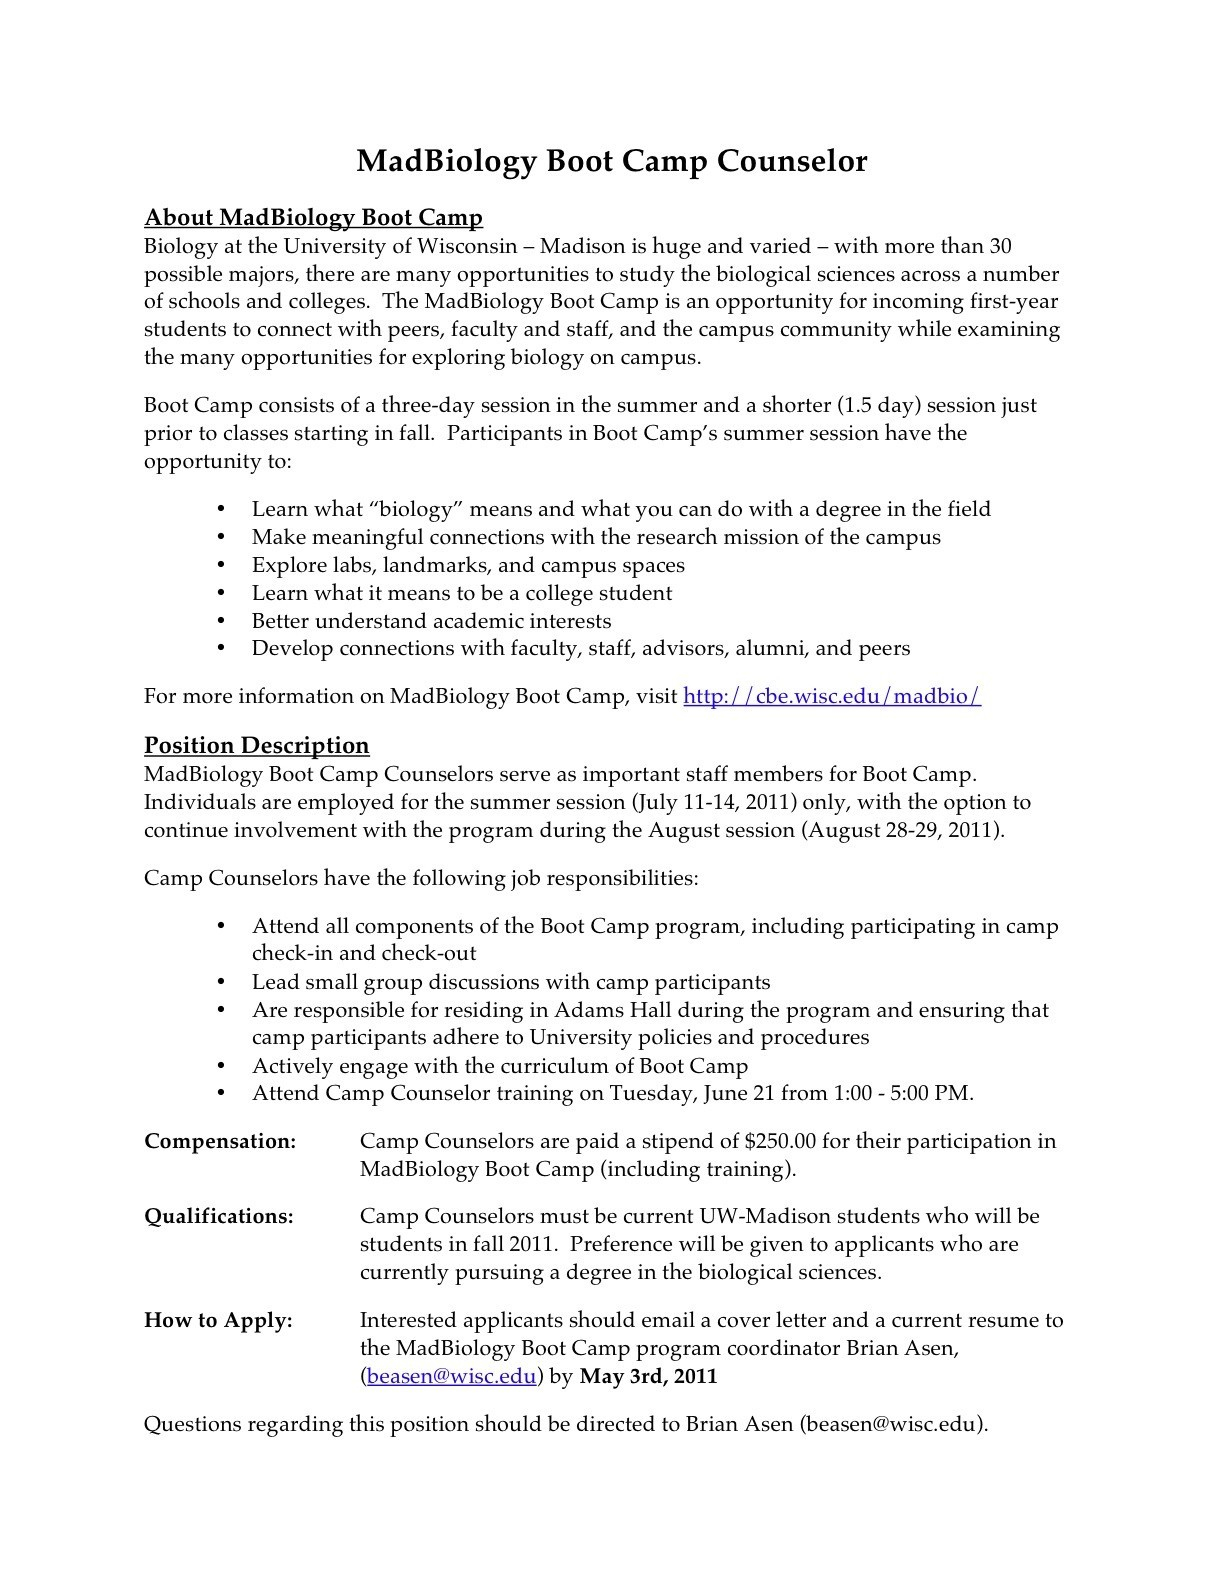 Summer Camp Counselor Resume - Camp Counselor Resume Inspirational Resume Examples for Youth